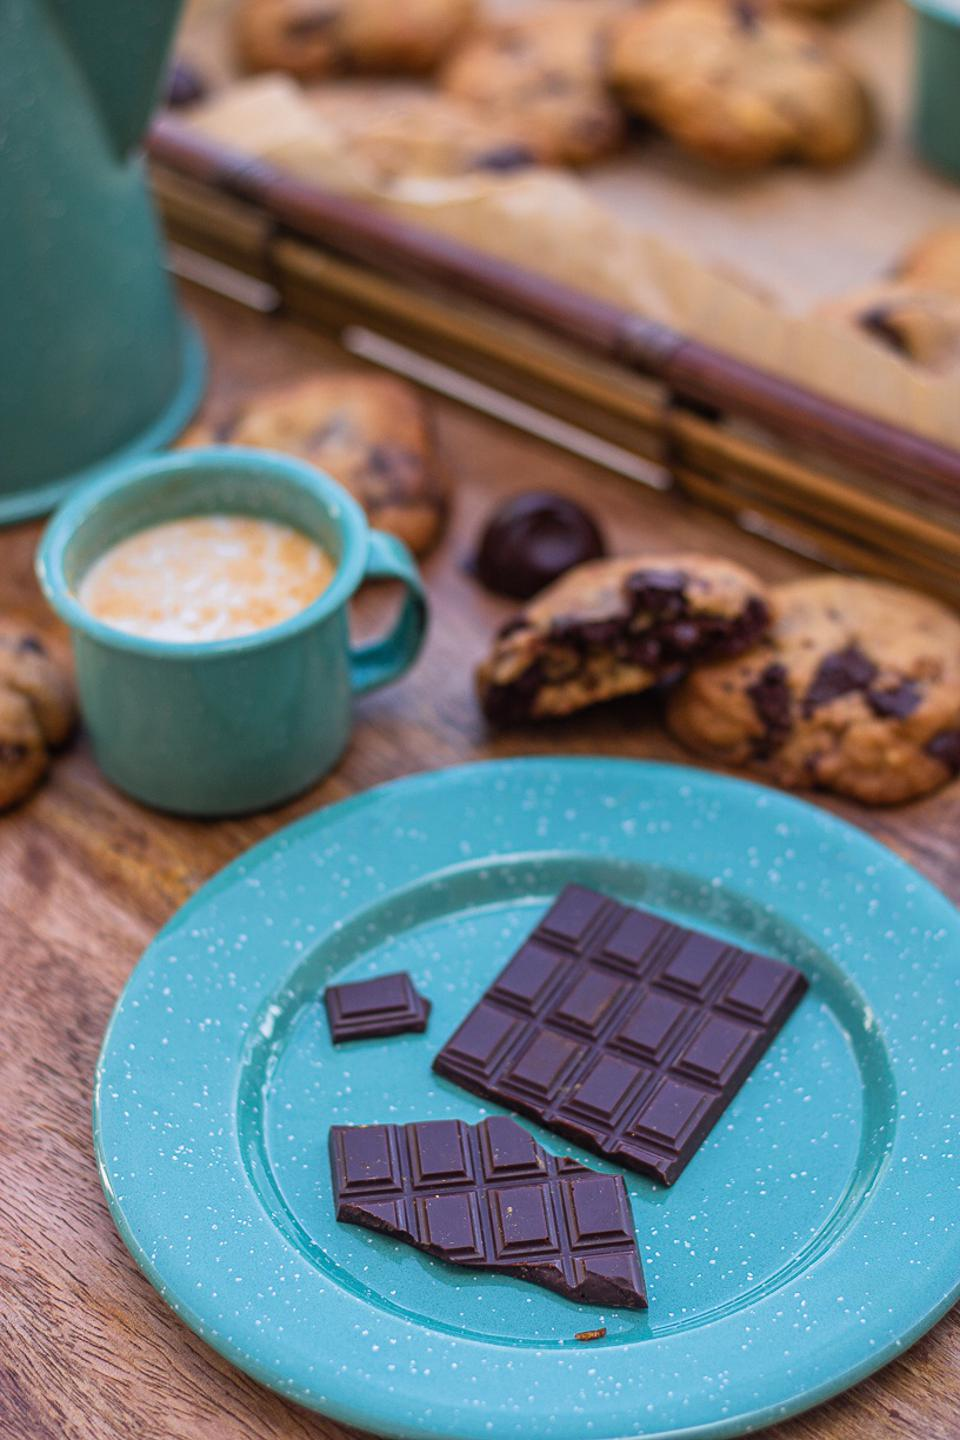 A blue plate with a bar of dark chocolate, with several chocolate chunk cookies and a mug of a milk chocolate next to it